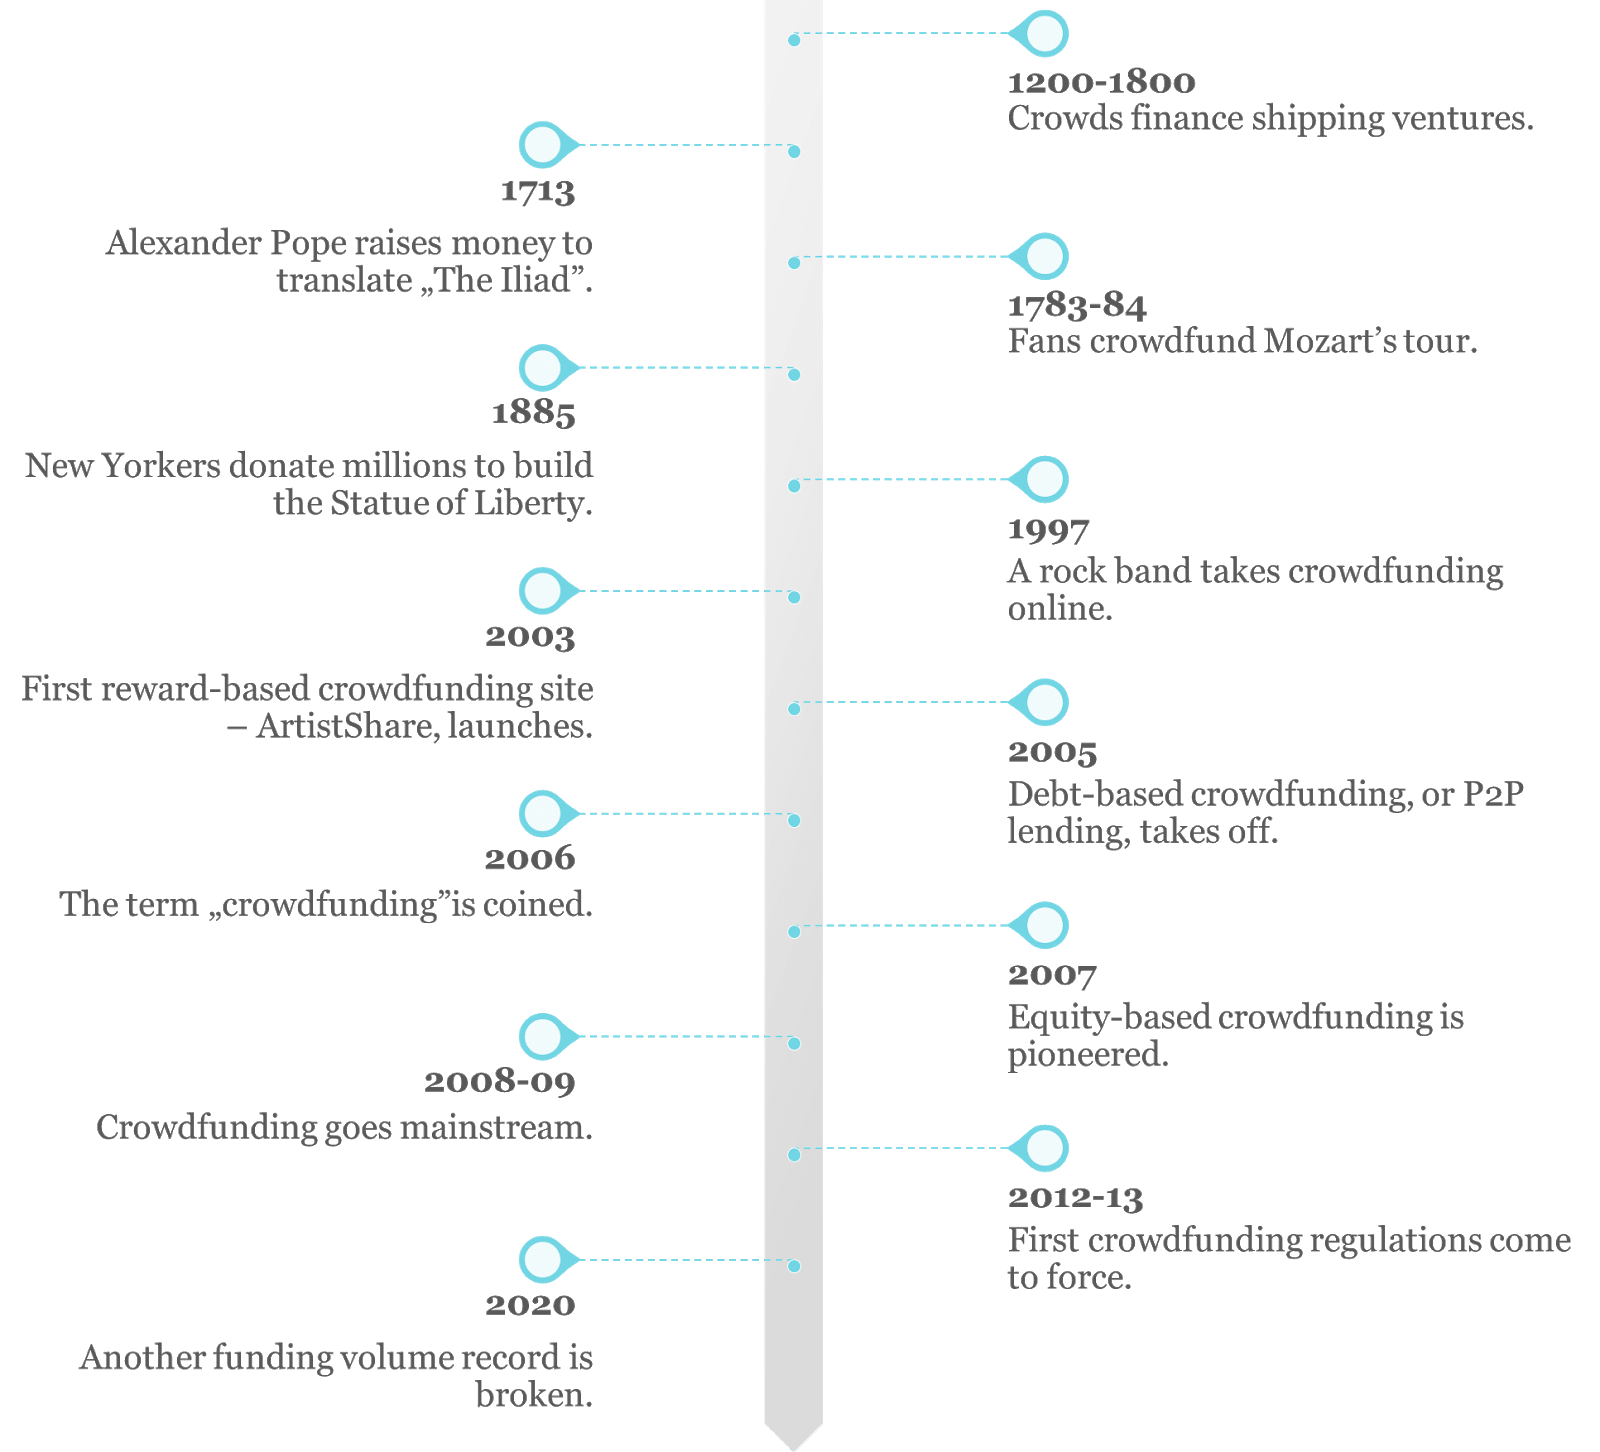 Timeline of the crowdfunding history